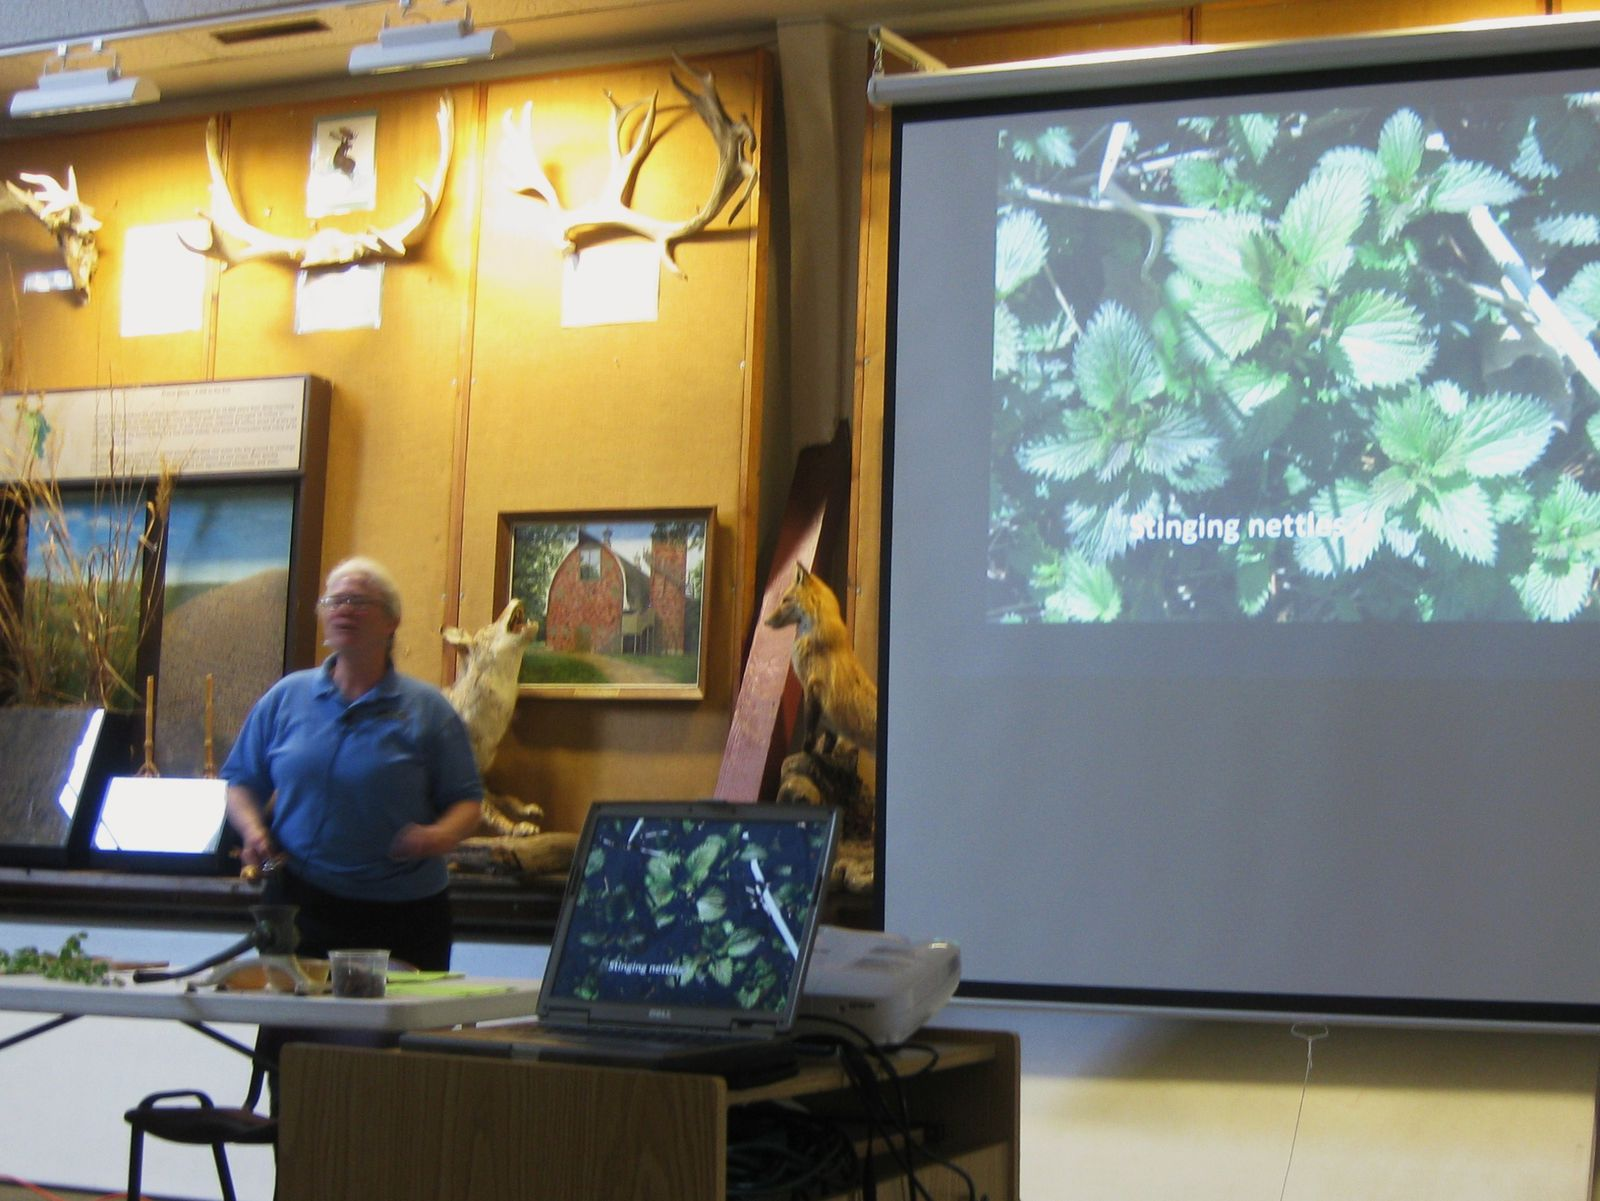 Indian Creek Nature Center staff members Jan Aiels & Christine Kirpes gave an intriguing presentation on wild edible plants.  They explained the basics of foraging, the plants' uses, and preparation.  The above photo shows Jan explaining that stinging nettles are edible.